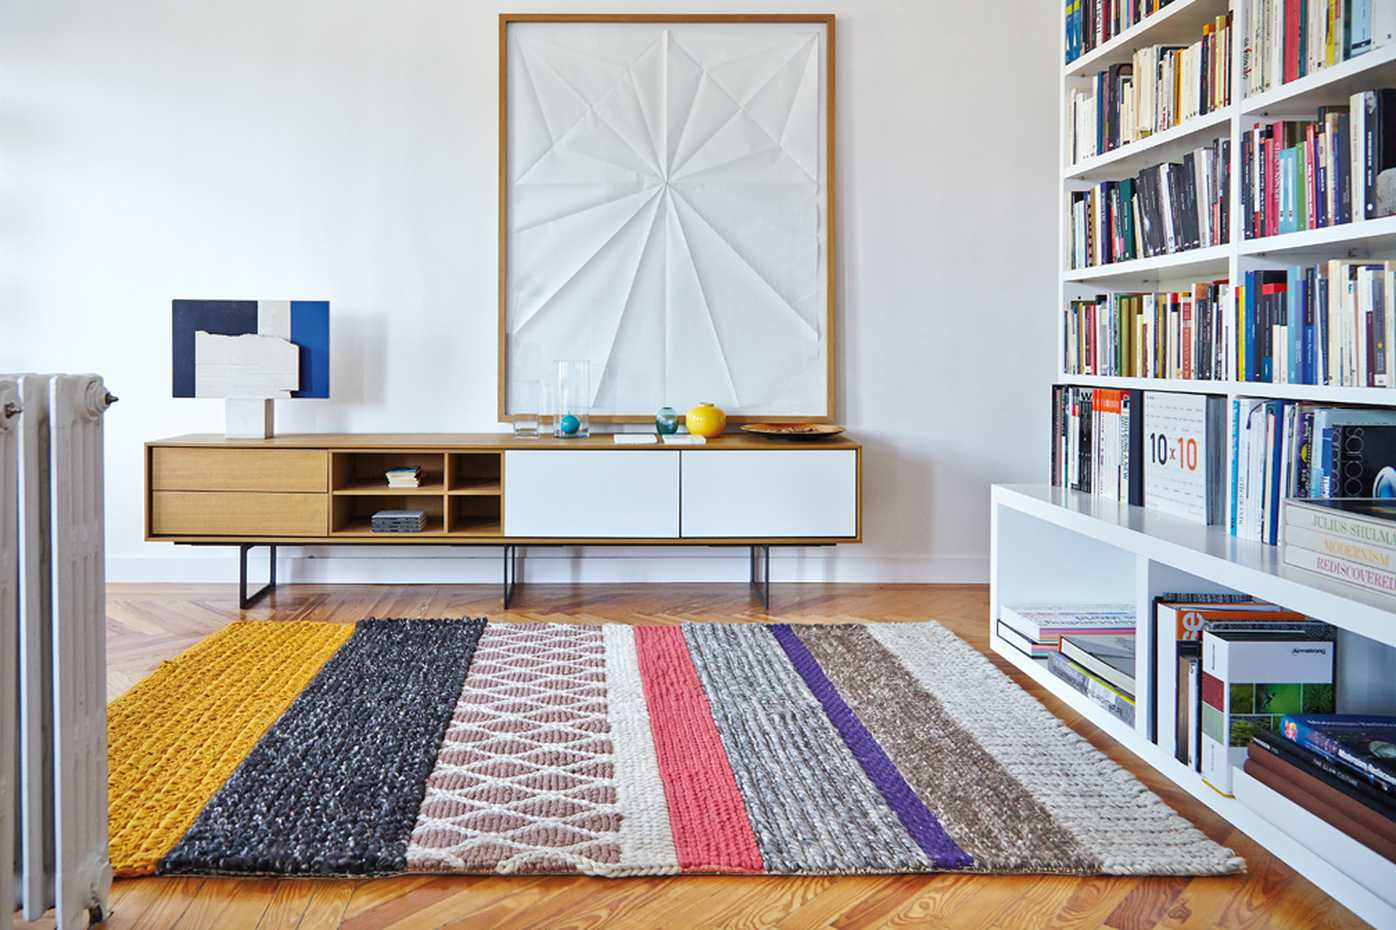 Mangas Original Rugs by Gan Rugs product image 1